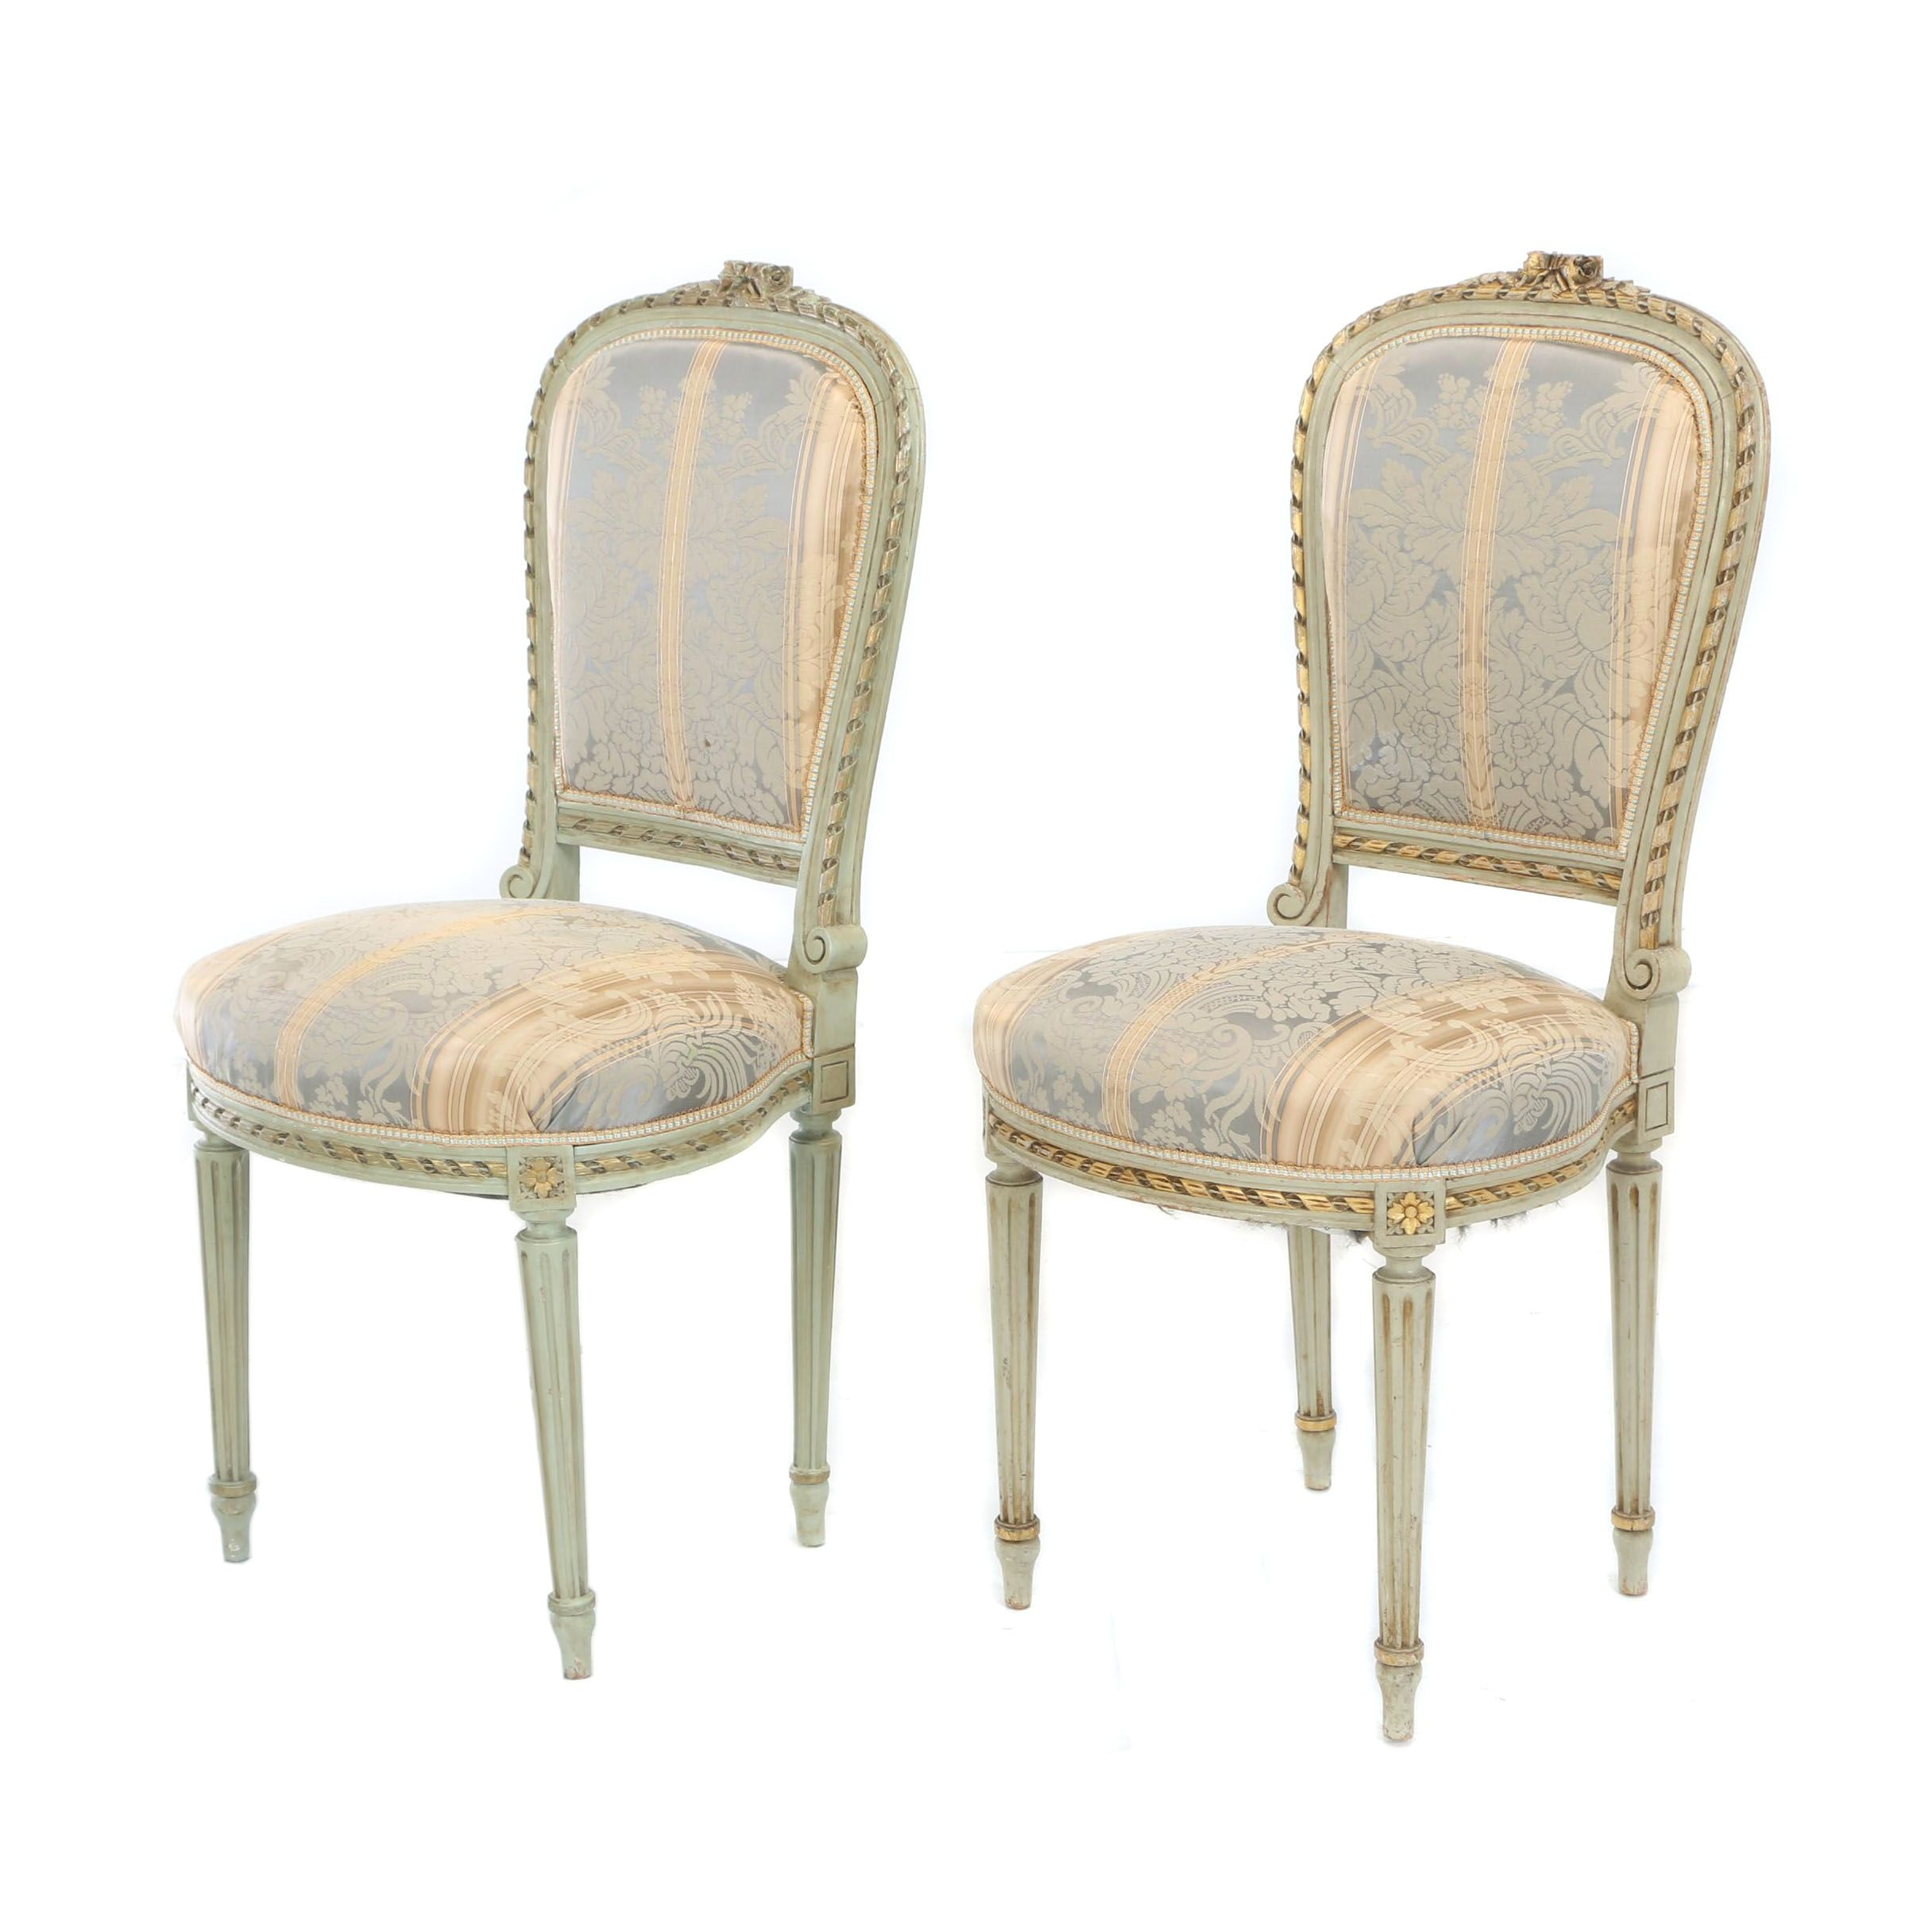 Pair of Louis XVI Style Painted and Parcel-Gilt Side Chairs, Early 20th Century